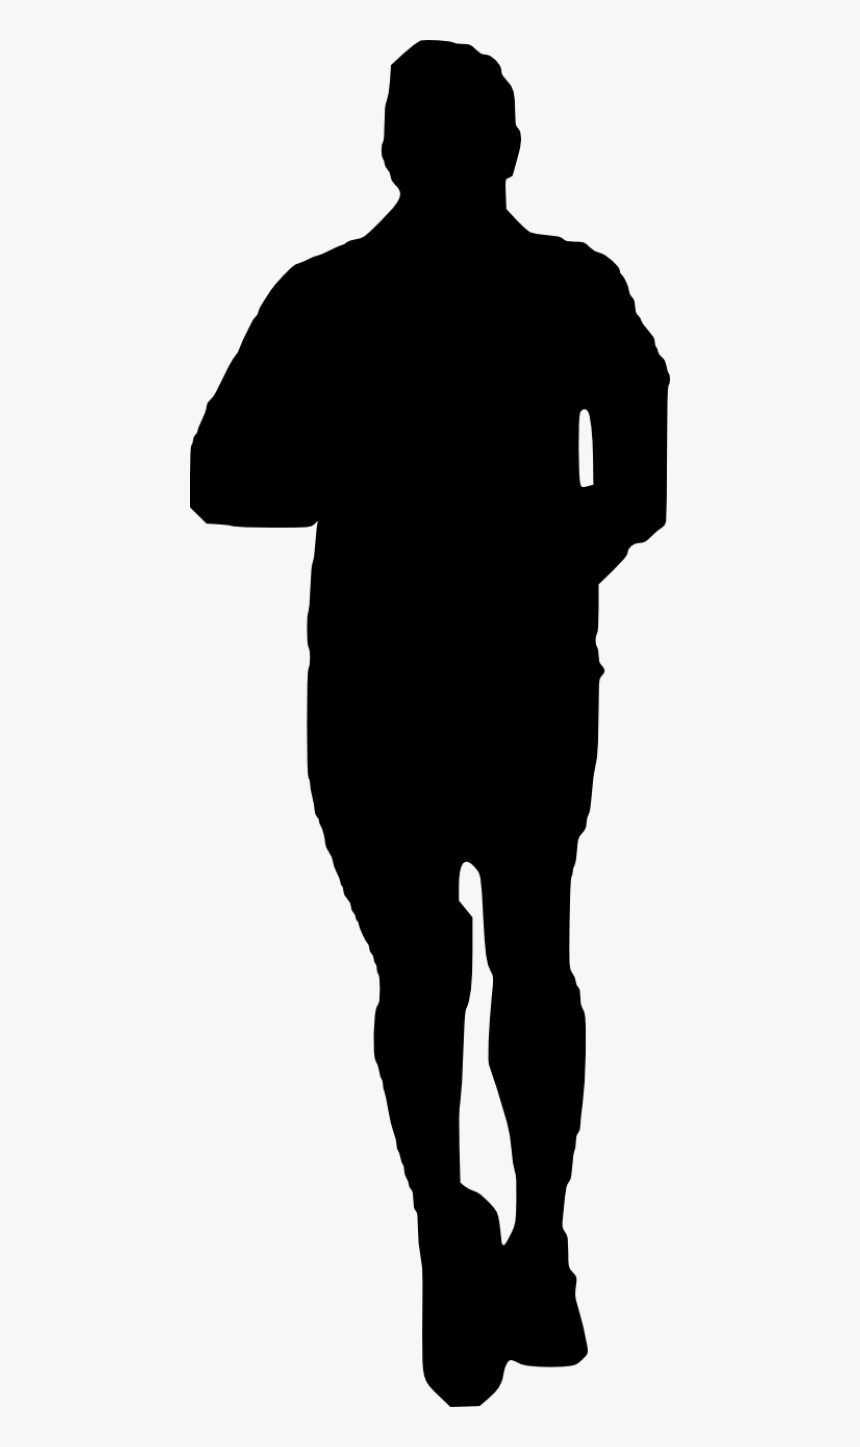 Free Png Man Running Silhouette Png Images Transparent - Png Woman Head Silhouette, Png Download, Free Download